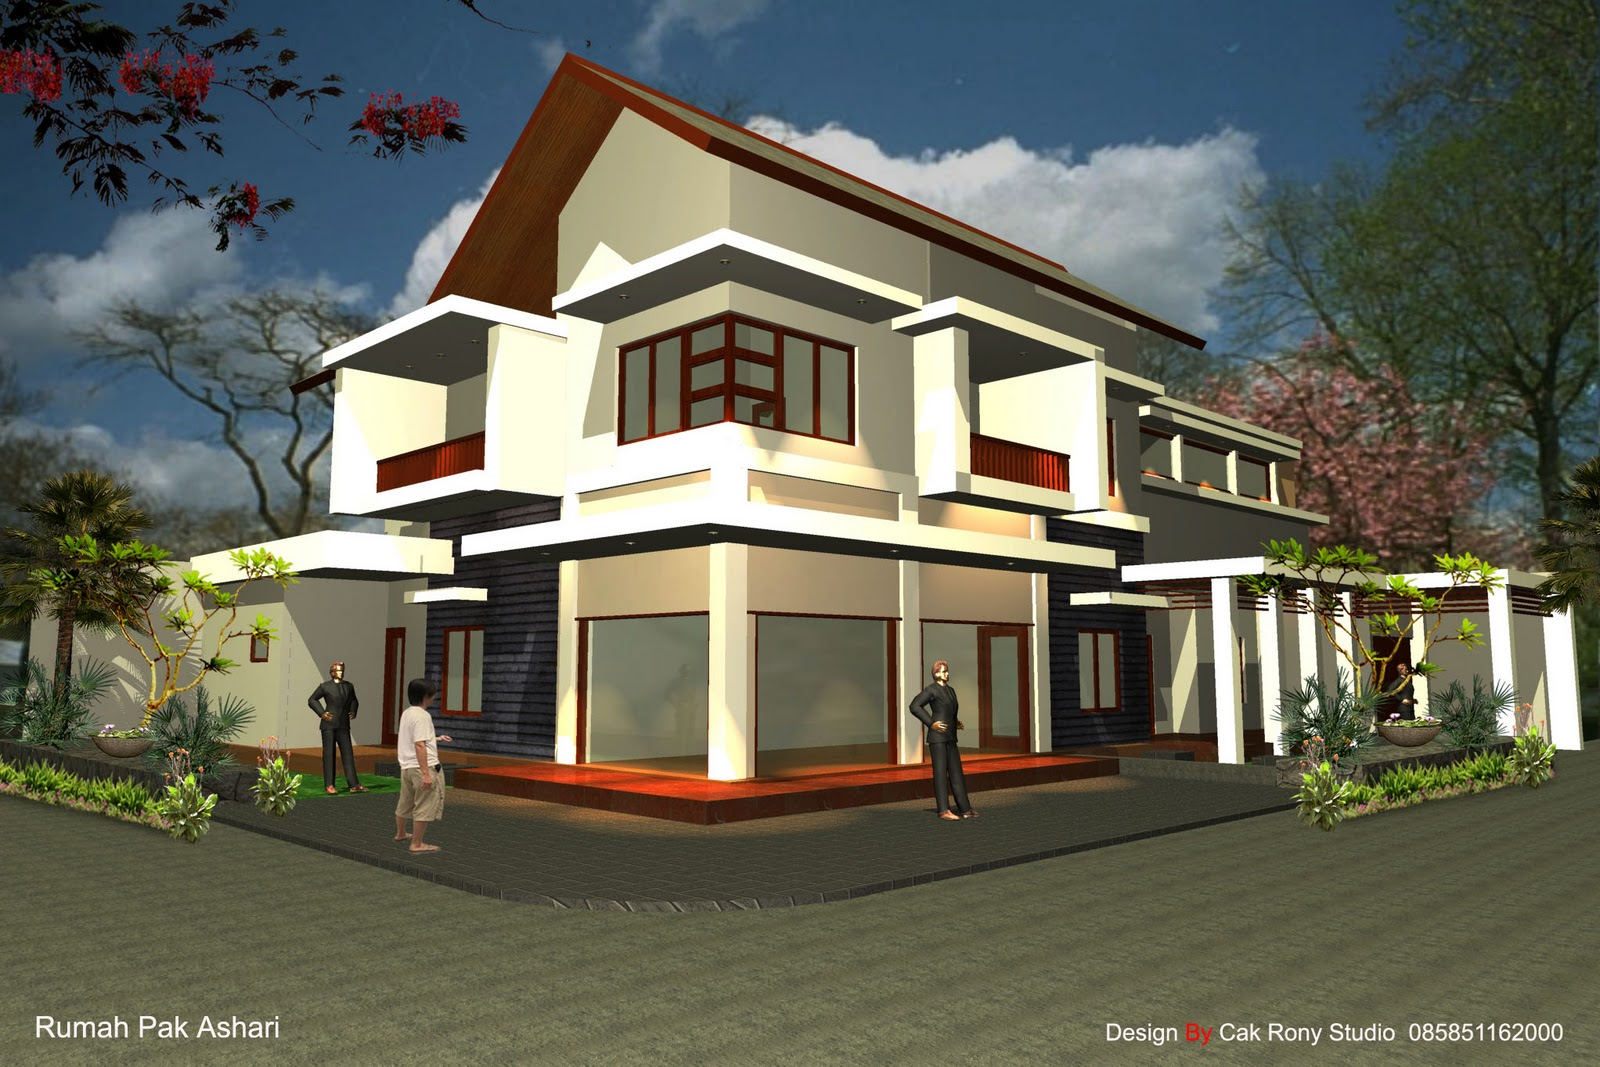 Home design exterior from back to front exterior designs for Front house exterior design